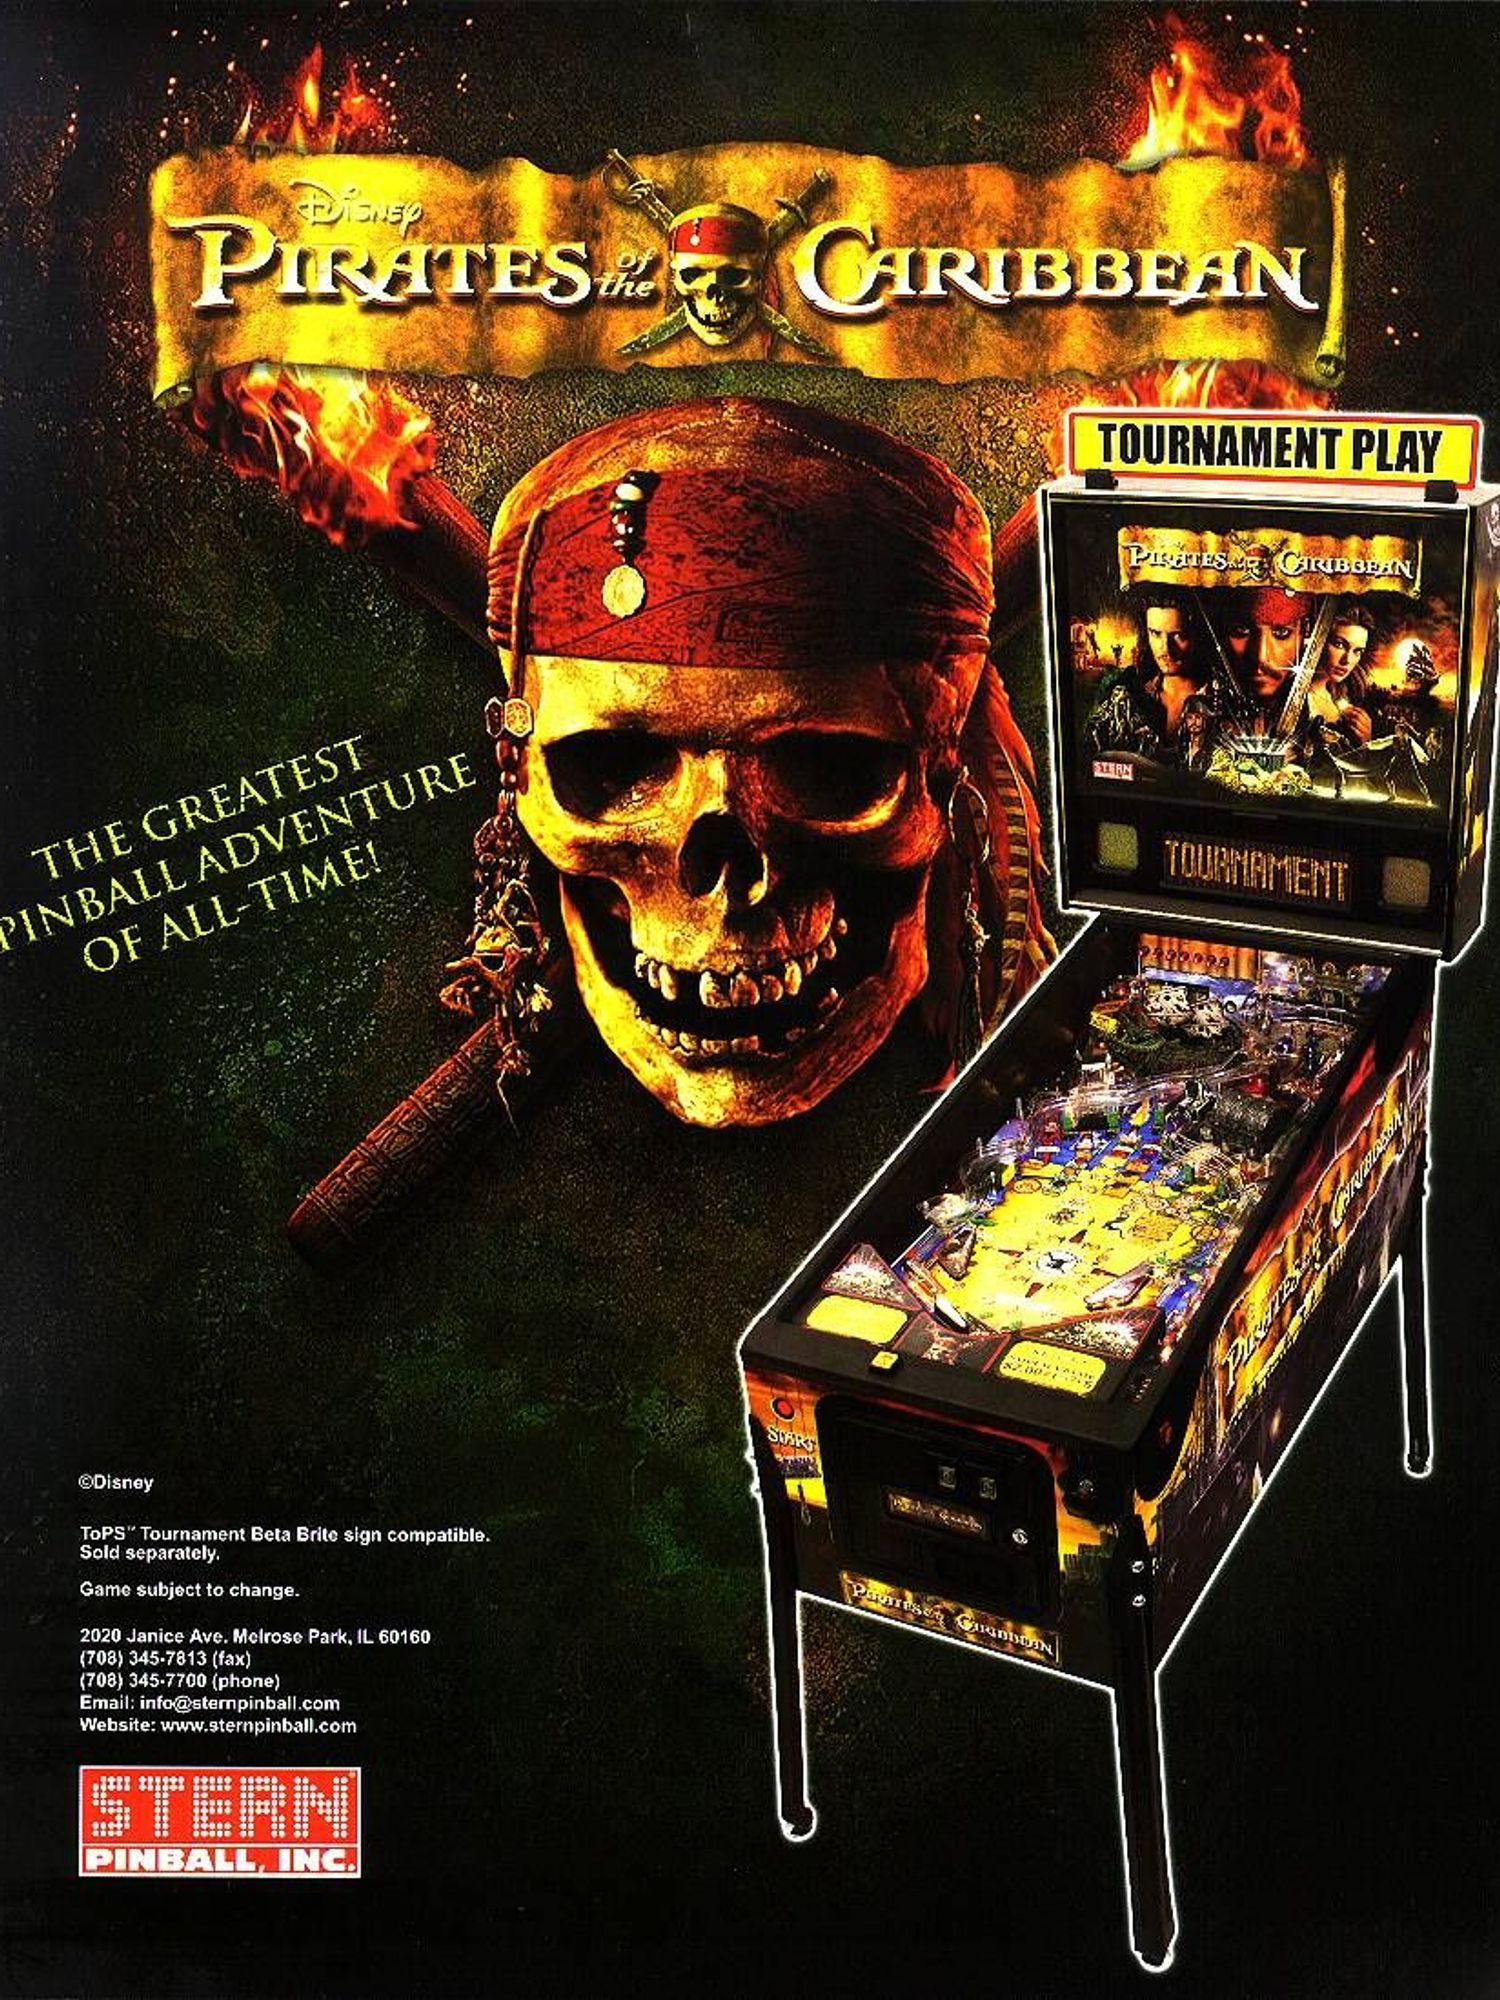 Pirates of the Caribbean Flyer Vorderseite